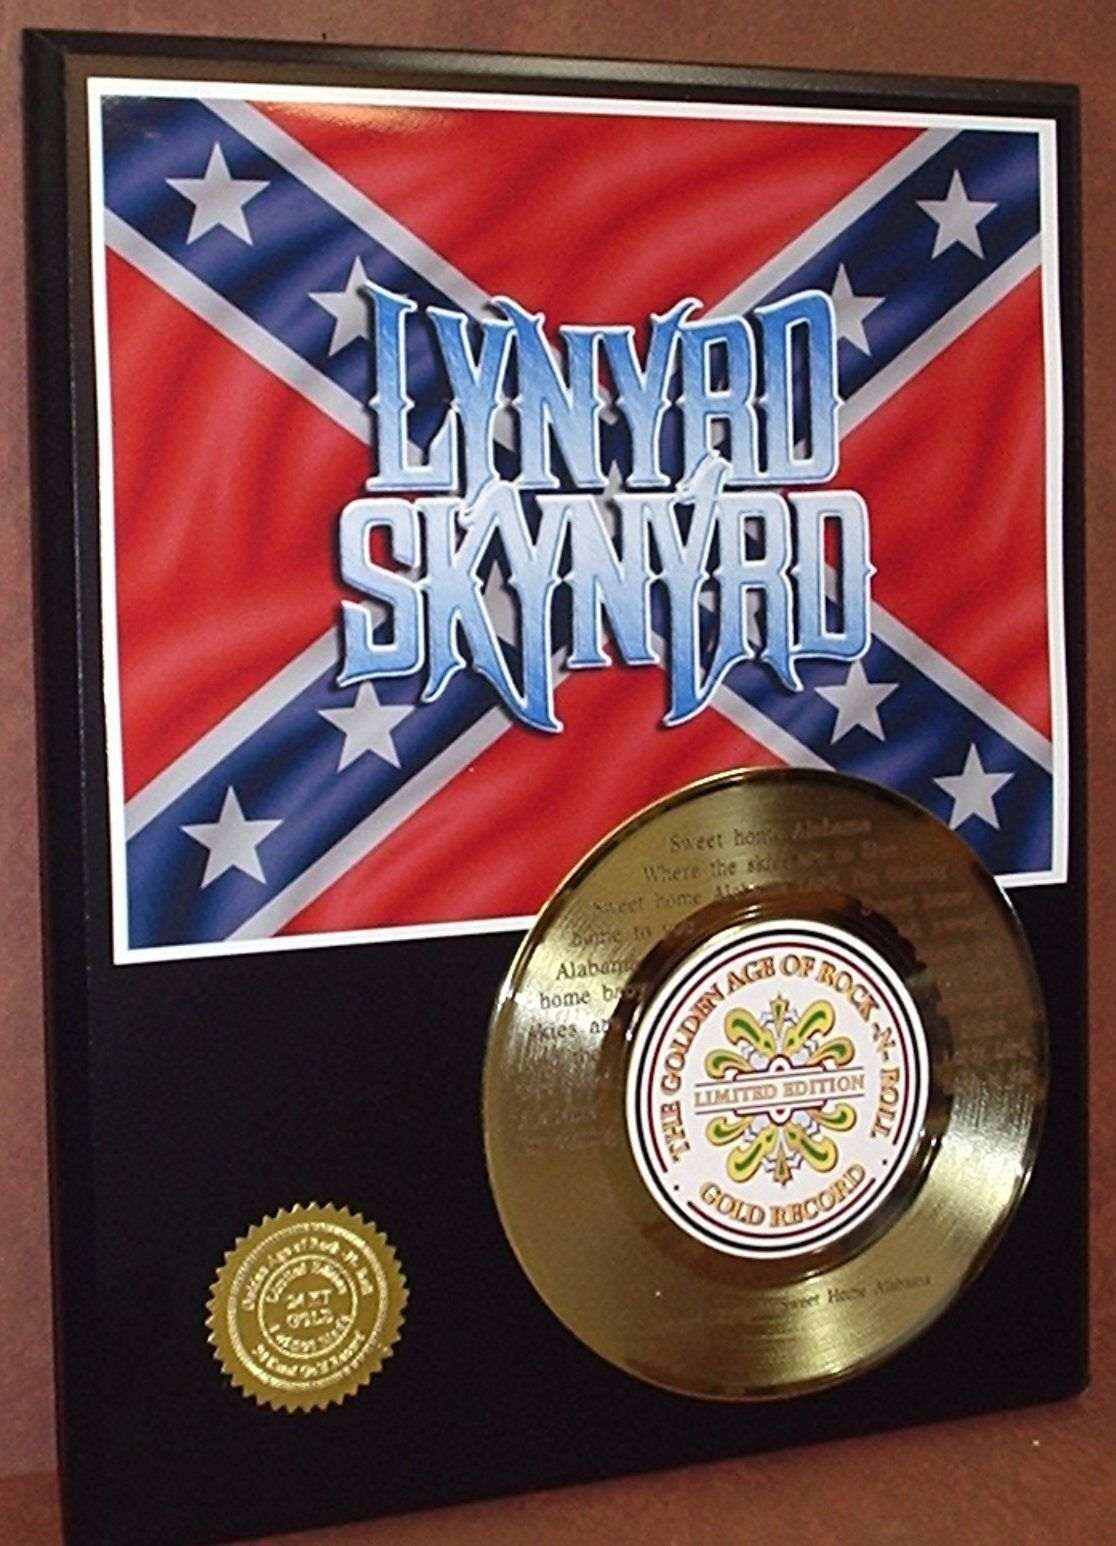 Classic rock artist 39 s displays gold record awards album for Who sang the song sweet home alabama